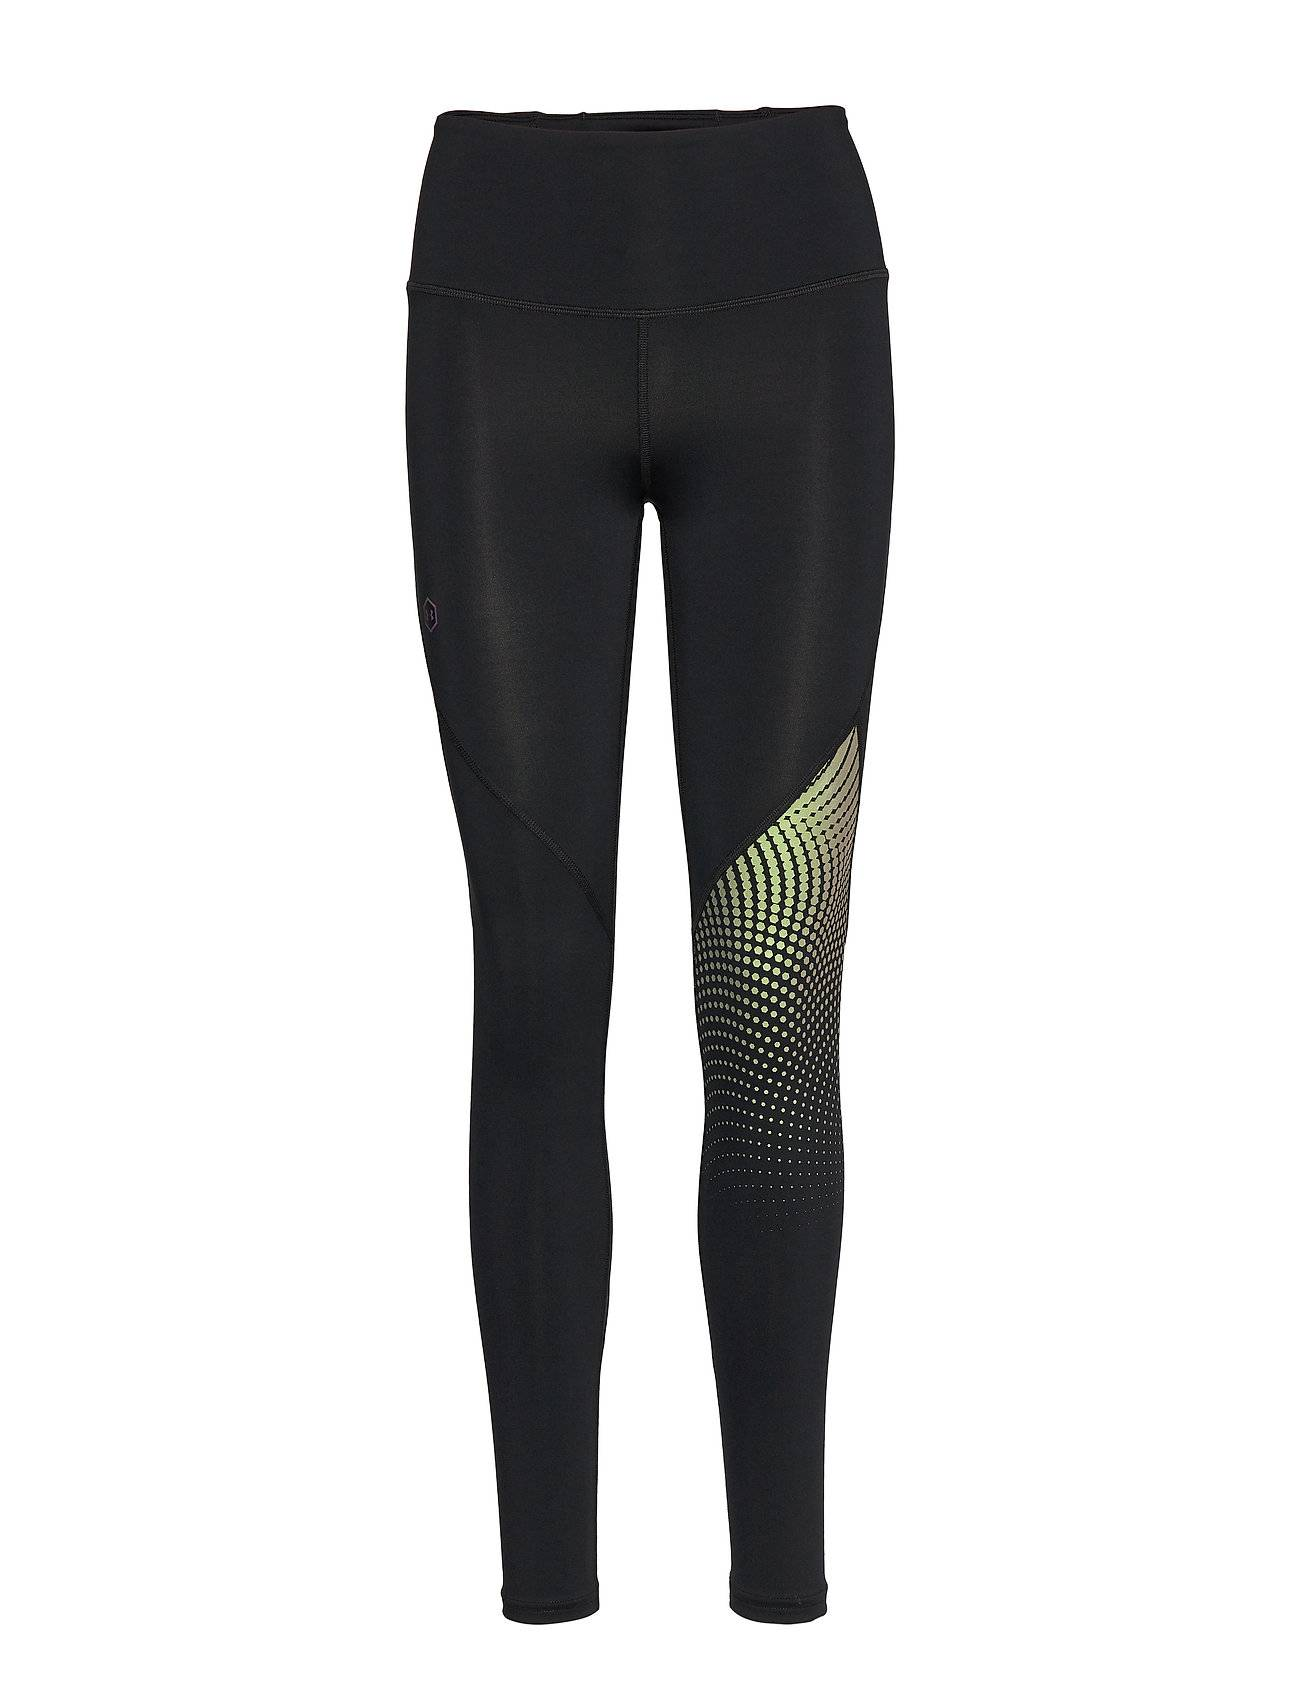 Image of Under Armour Ua Rush Legging Ombre Graphc Running/training Tights Musta Under Armour